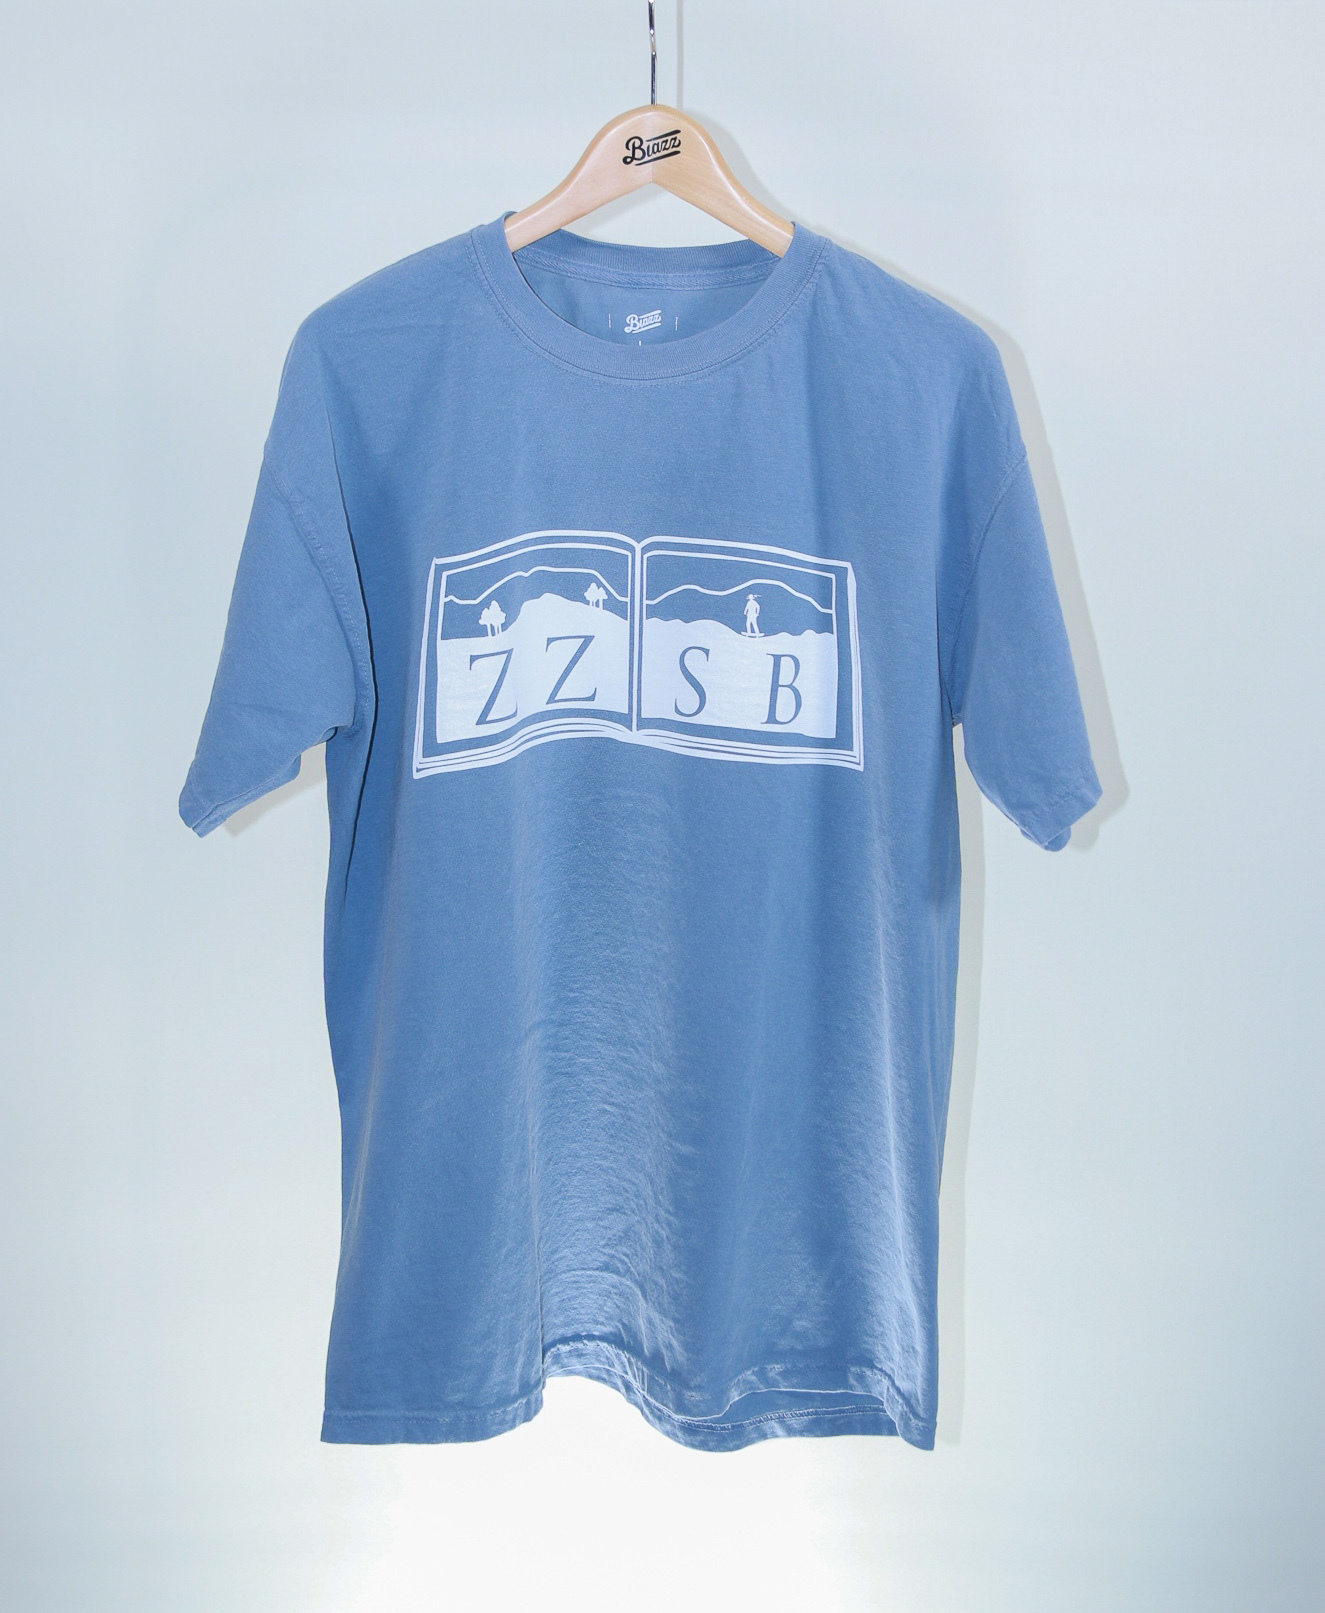 ZZSB 90's DICTIONARY TEE [BLUE]